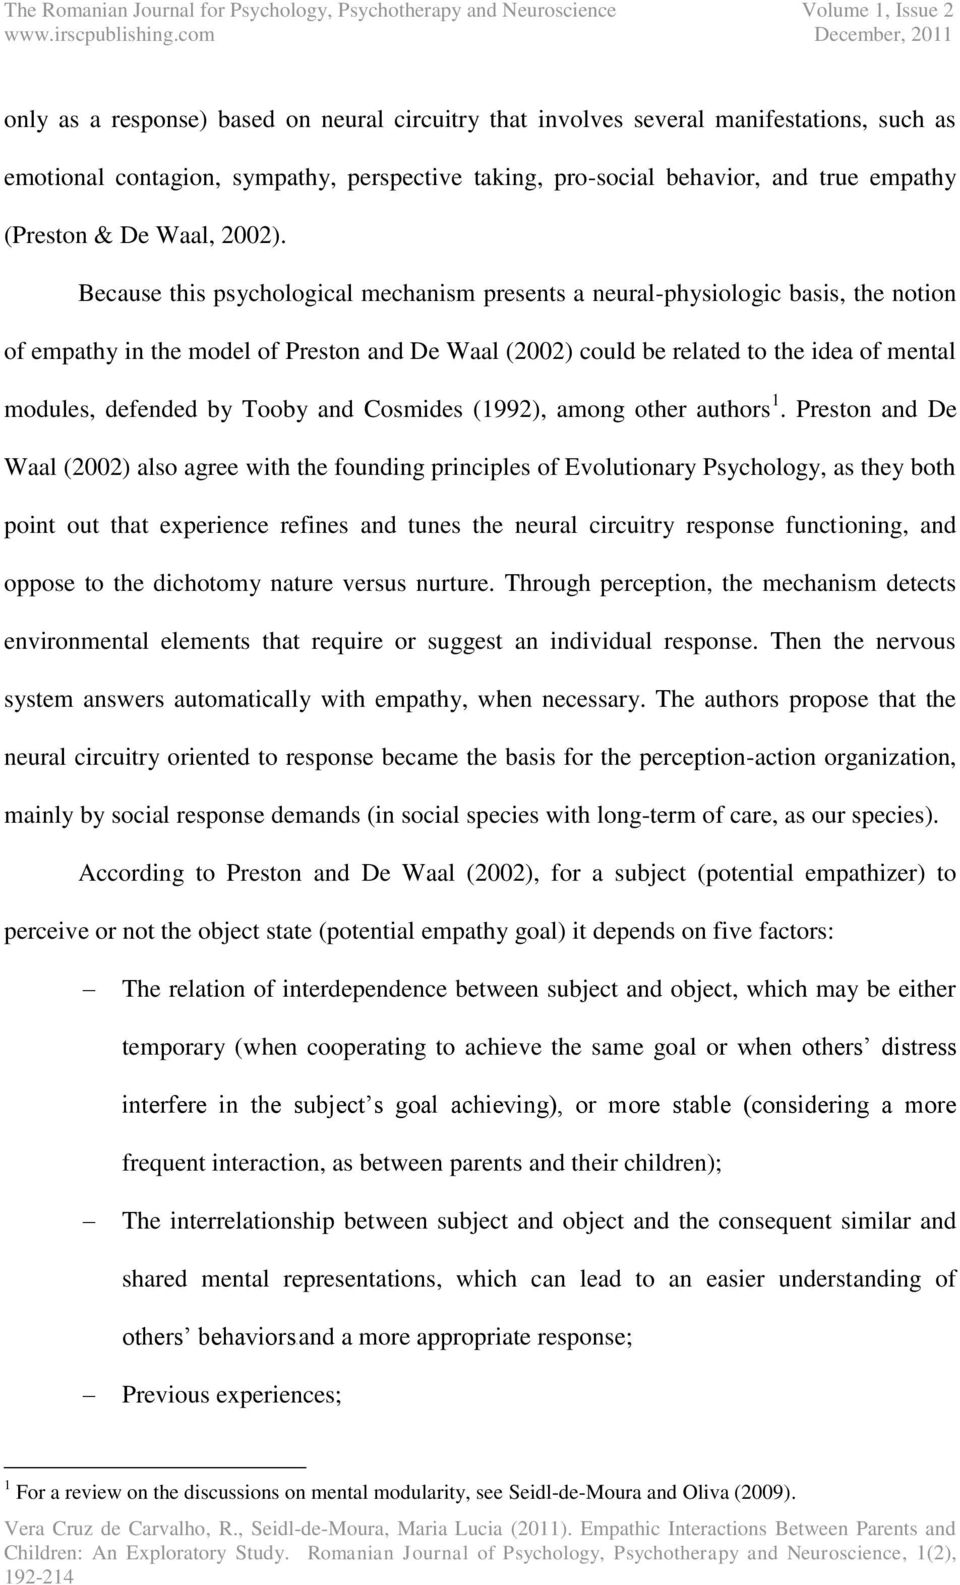 Because this psychological mechanism presents a neural-physiologic basis, the notion of empathy in the model of Preston and De Waal (2002) could be related to the idea of mental modules, defended by